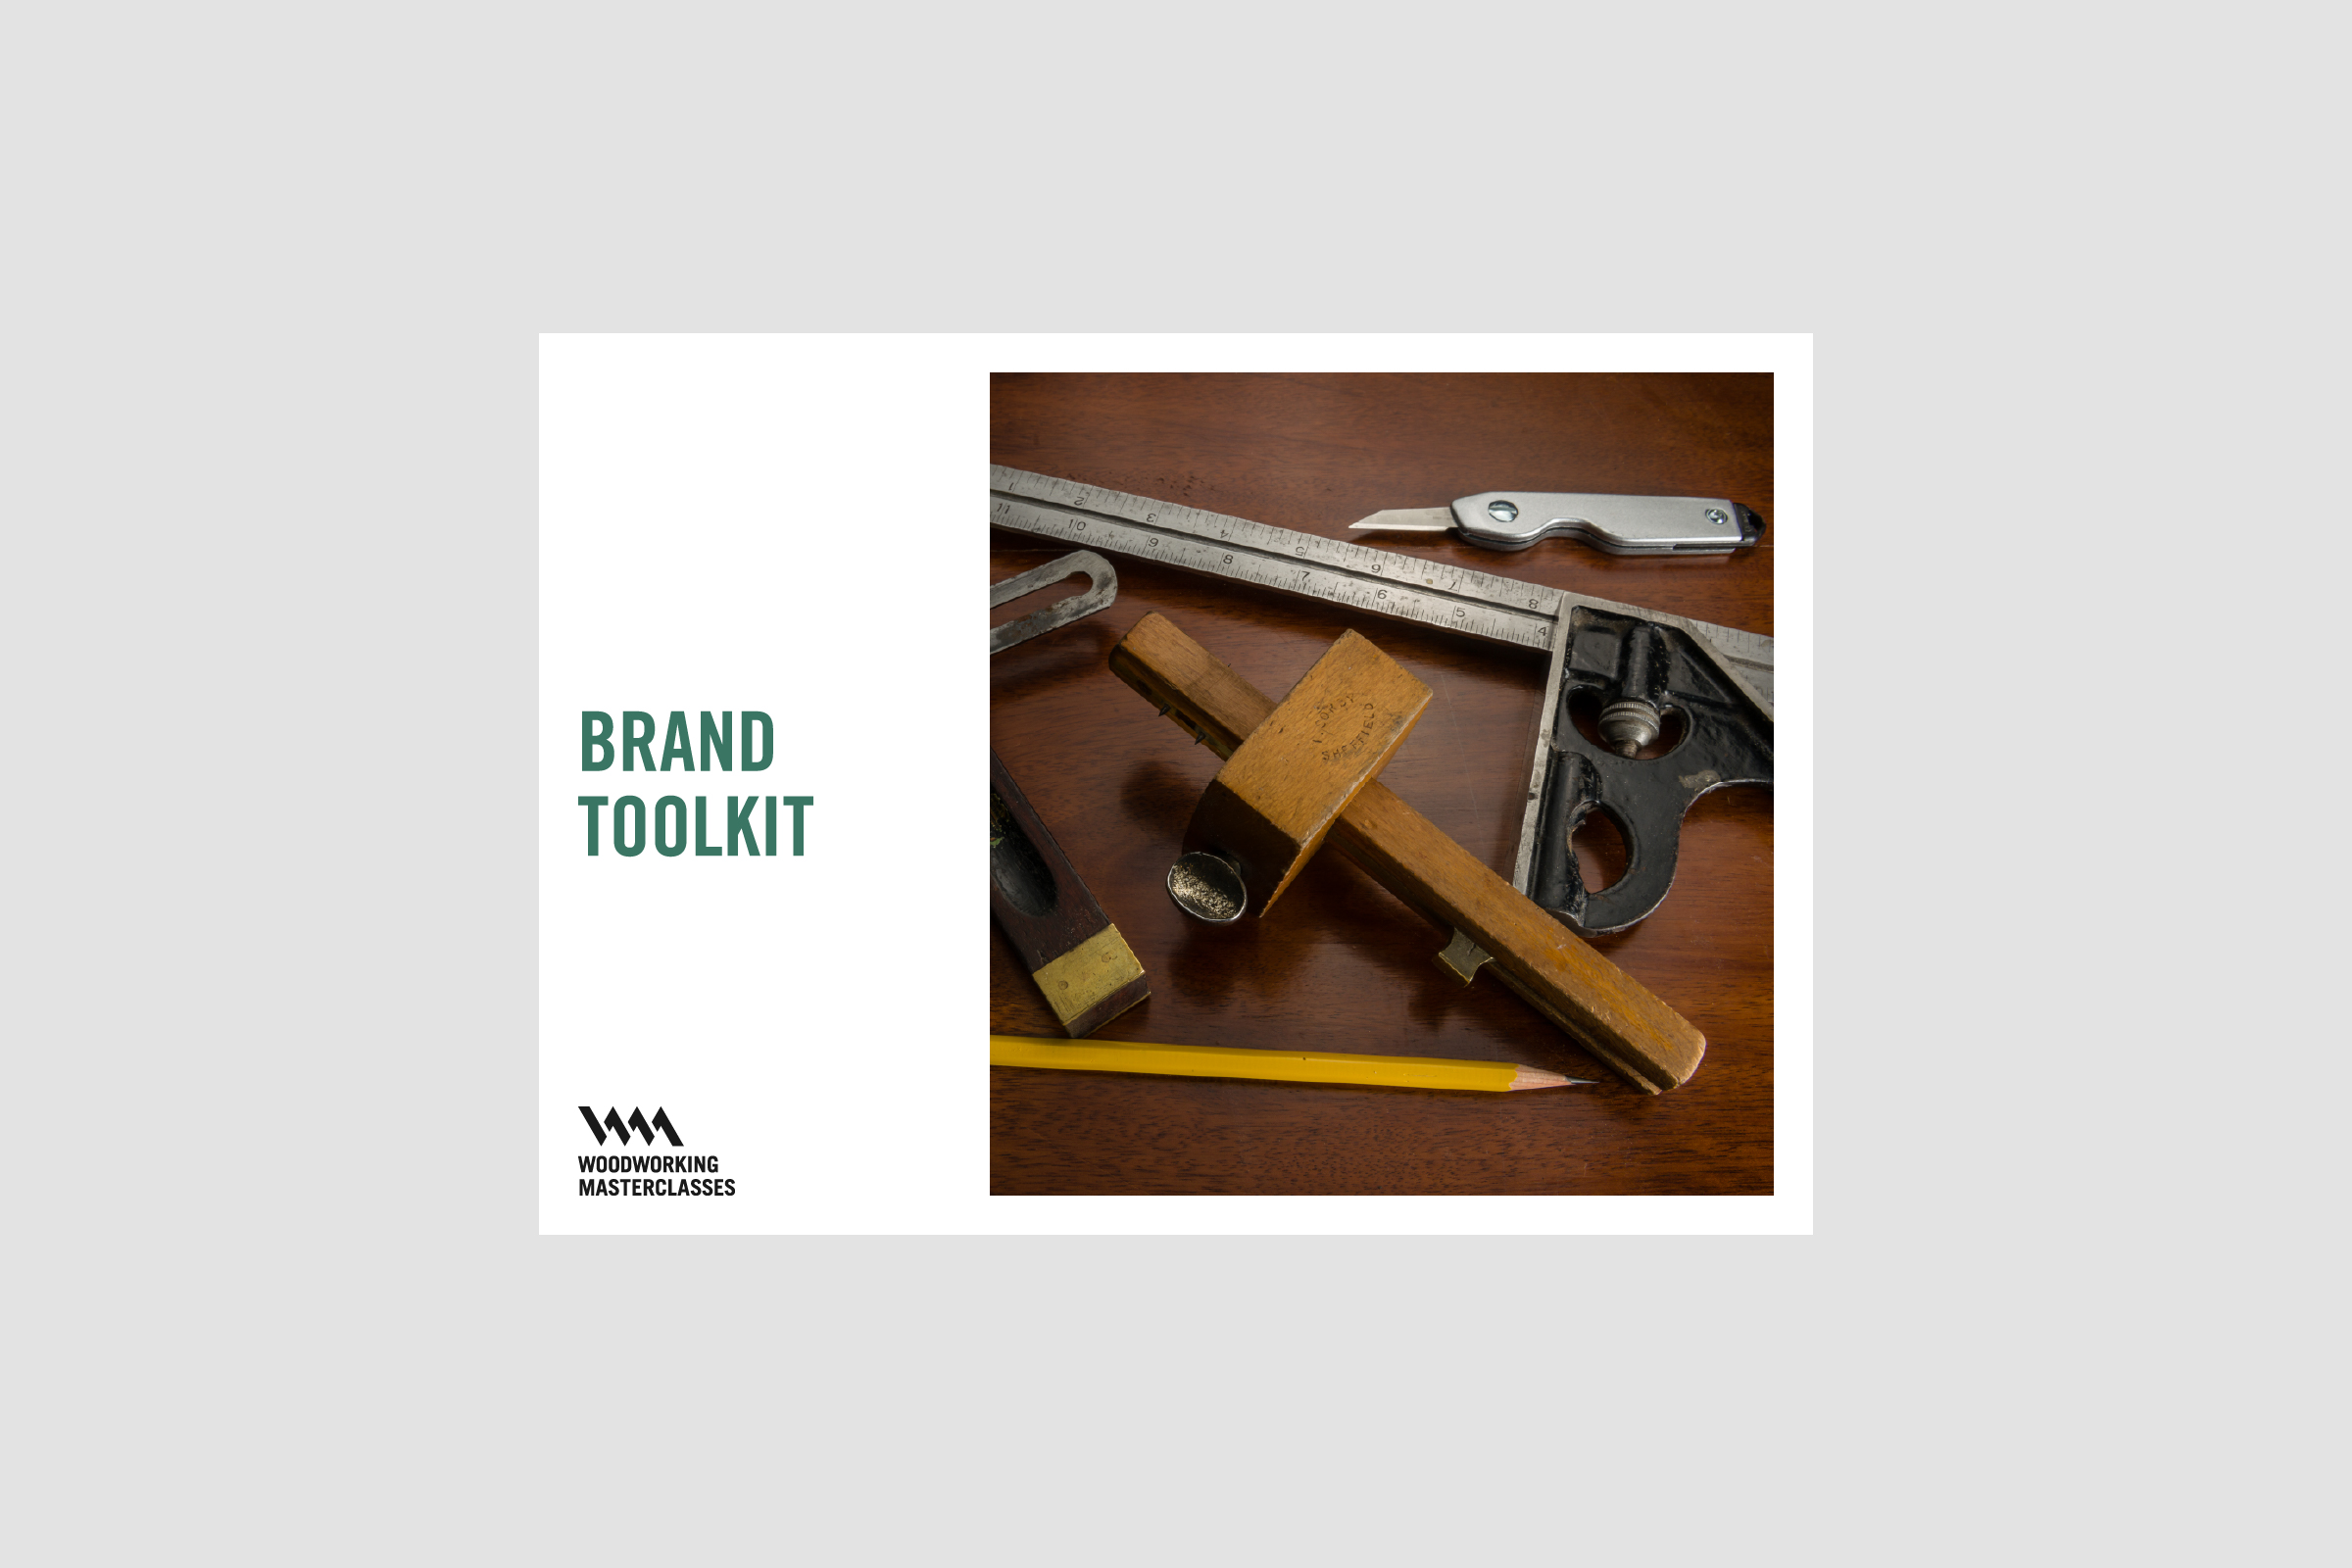 Front page of brand guidelines for Woodworking Masterclasses